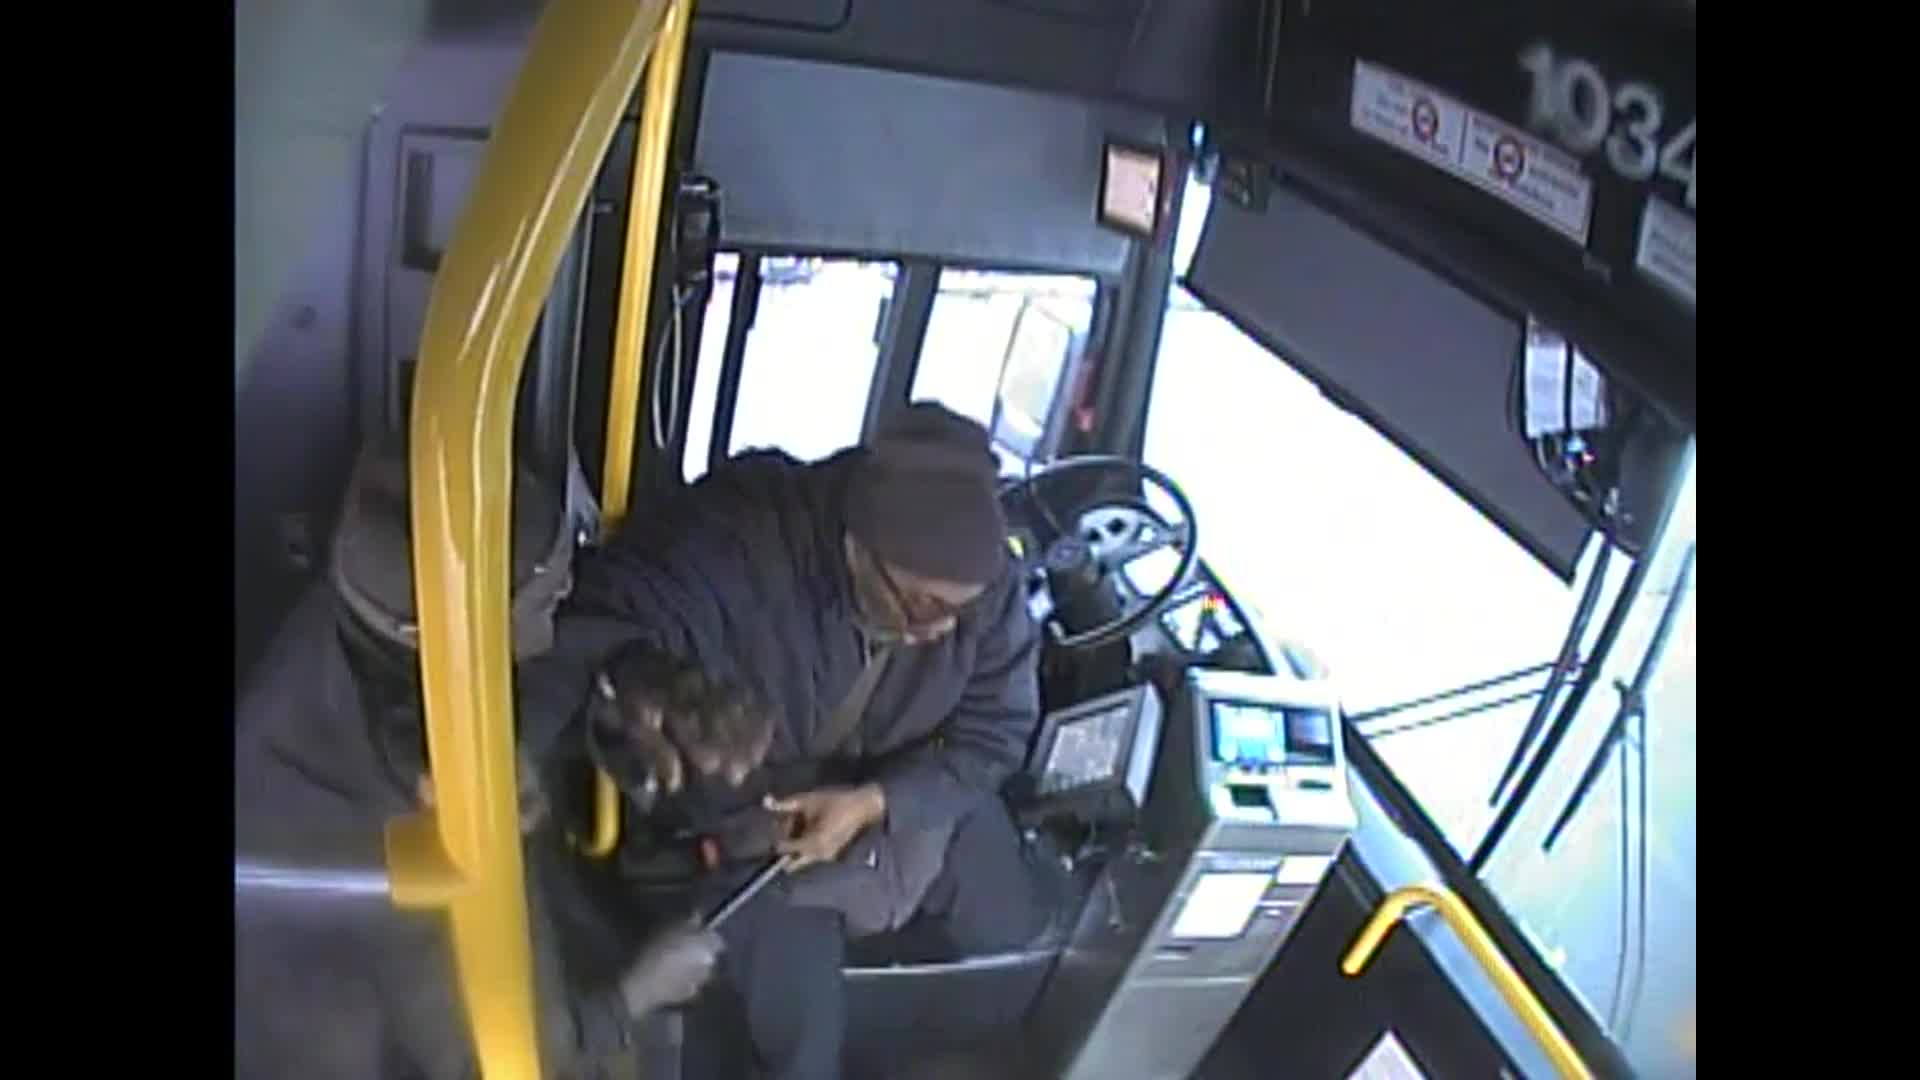 Bus driver accused of assaulting passenger after man hit him